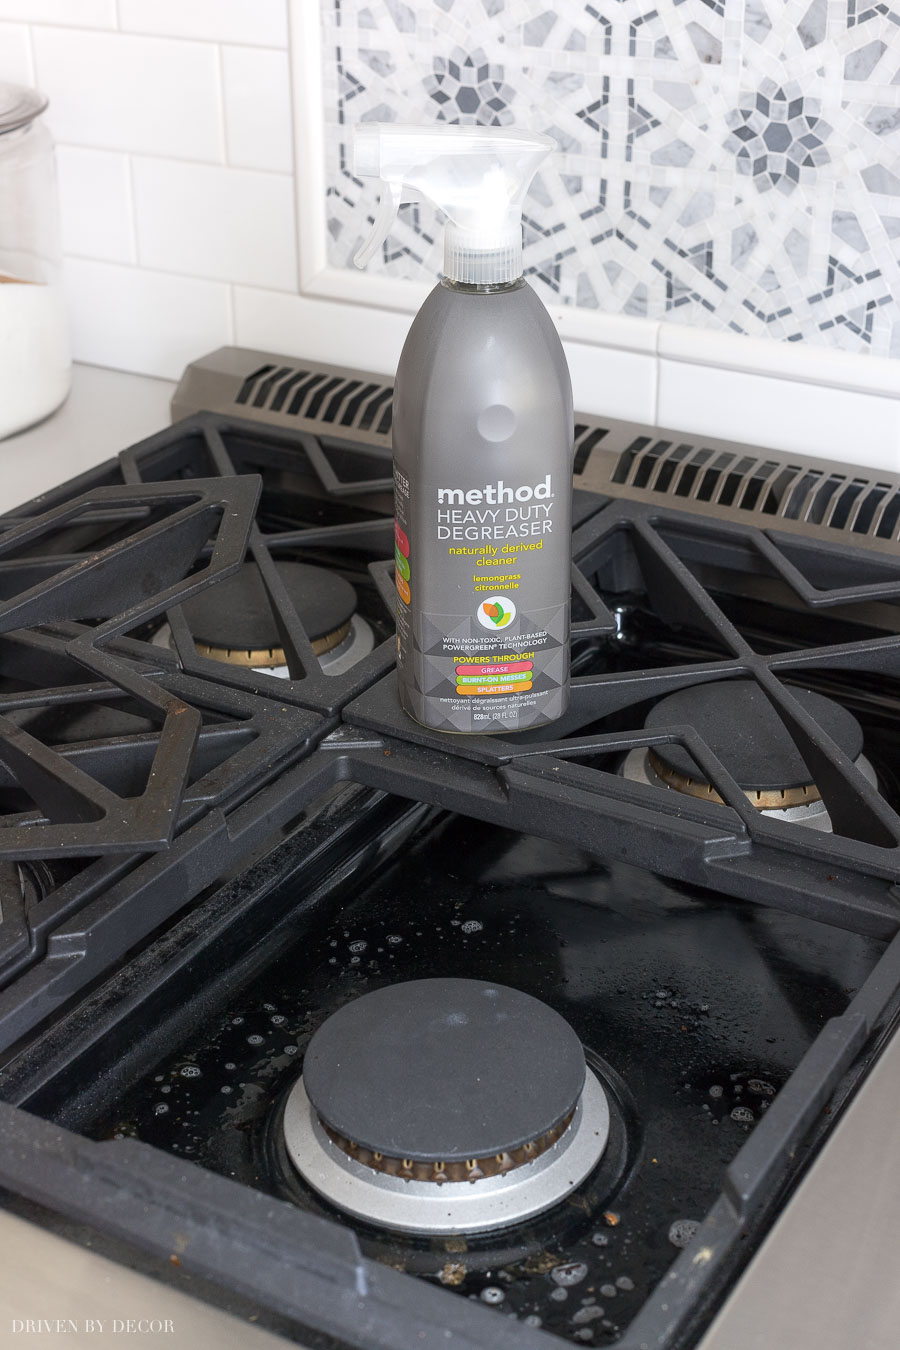 My favorite way to easily clean my gas range! This degreaser is awesome!